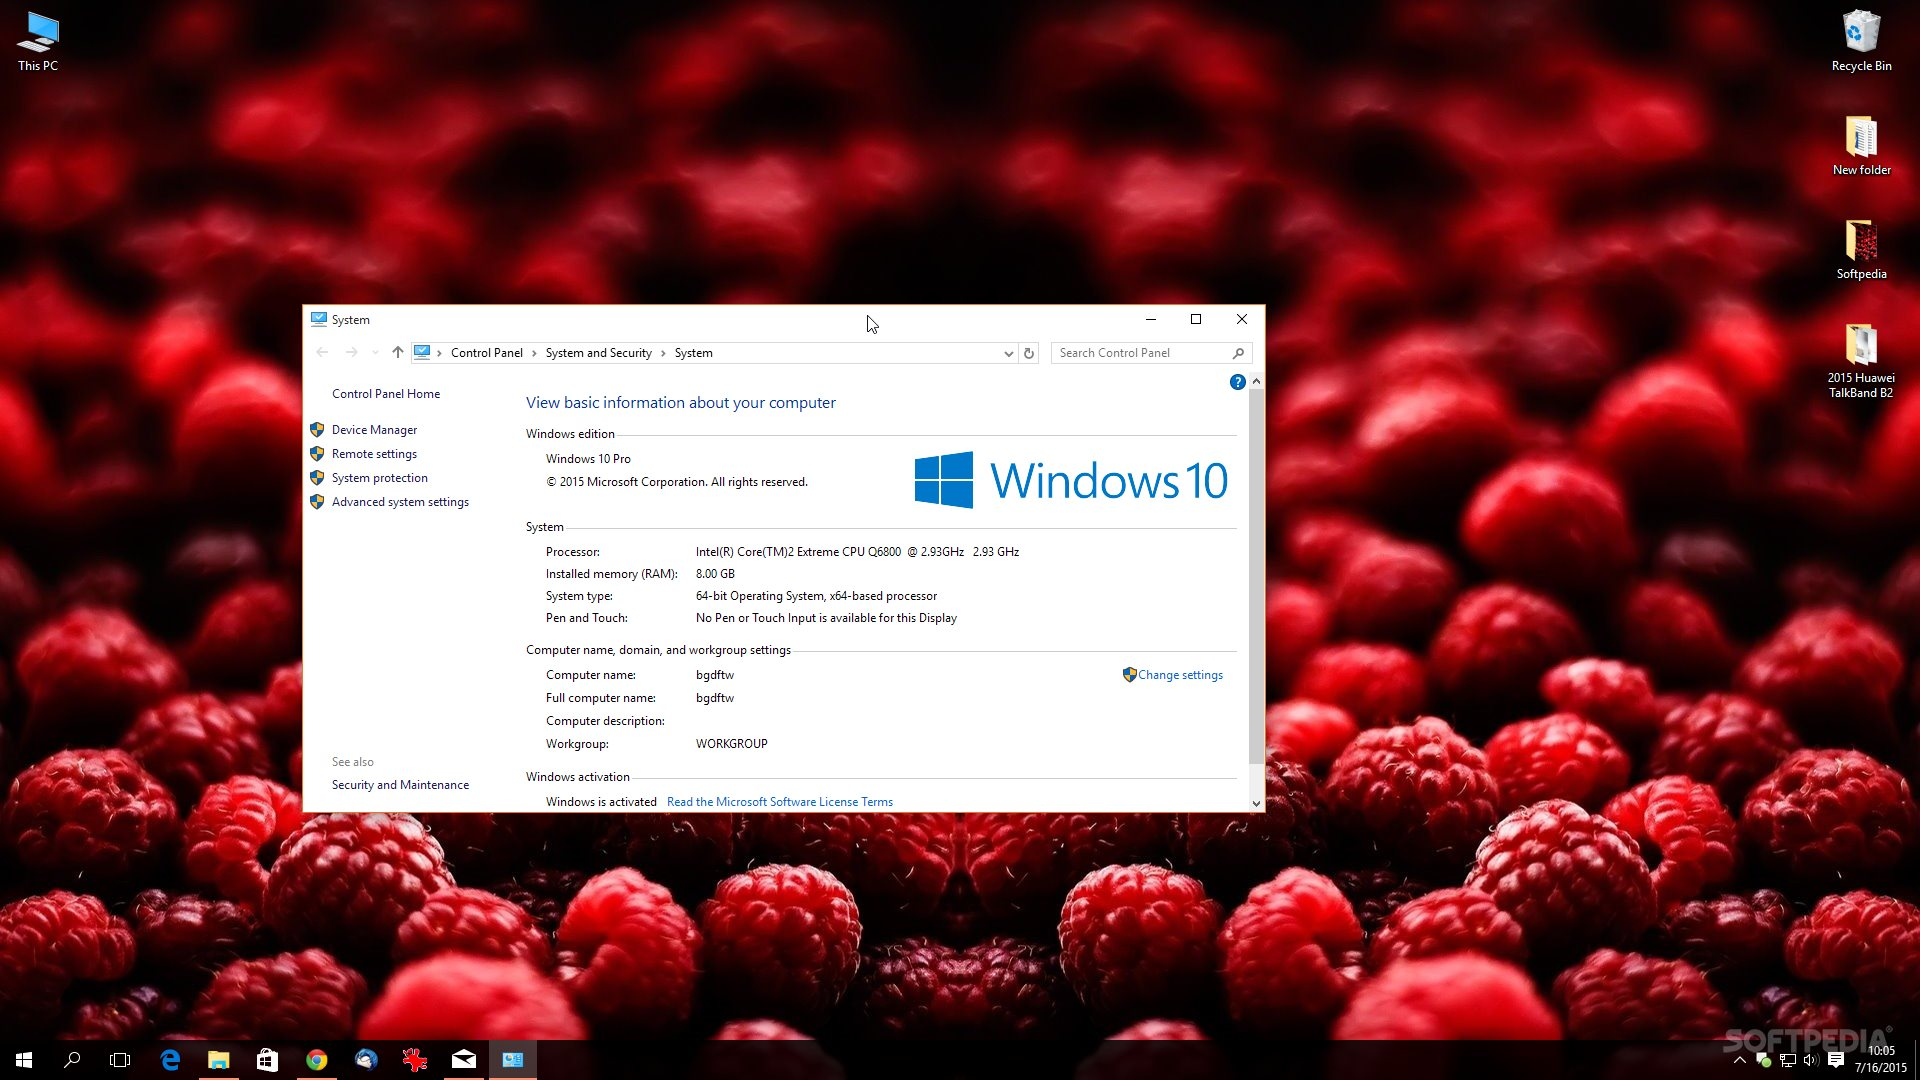 Windows 10 rtm build 10240 screenshots windows 10 build 10240 installation windows 10 build 10240 installation ccuart Gallery